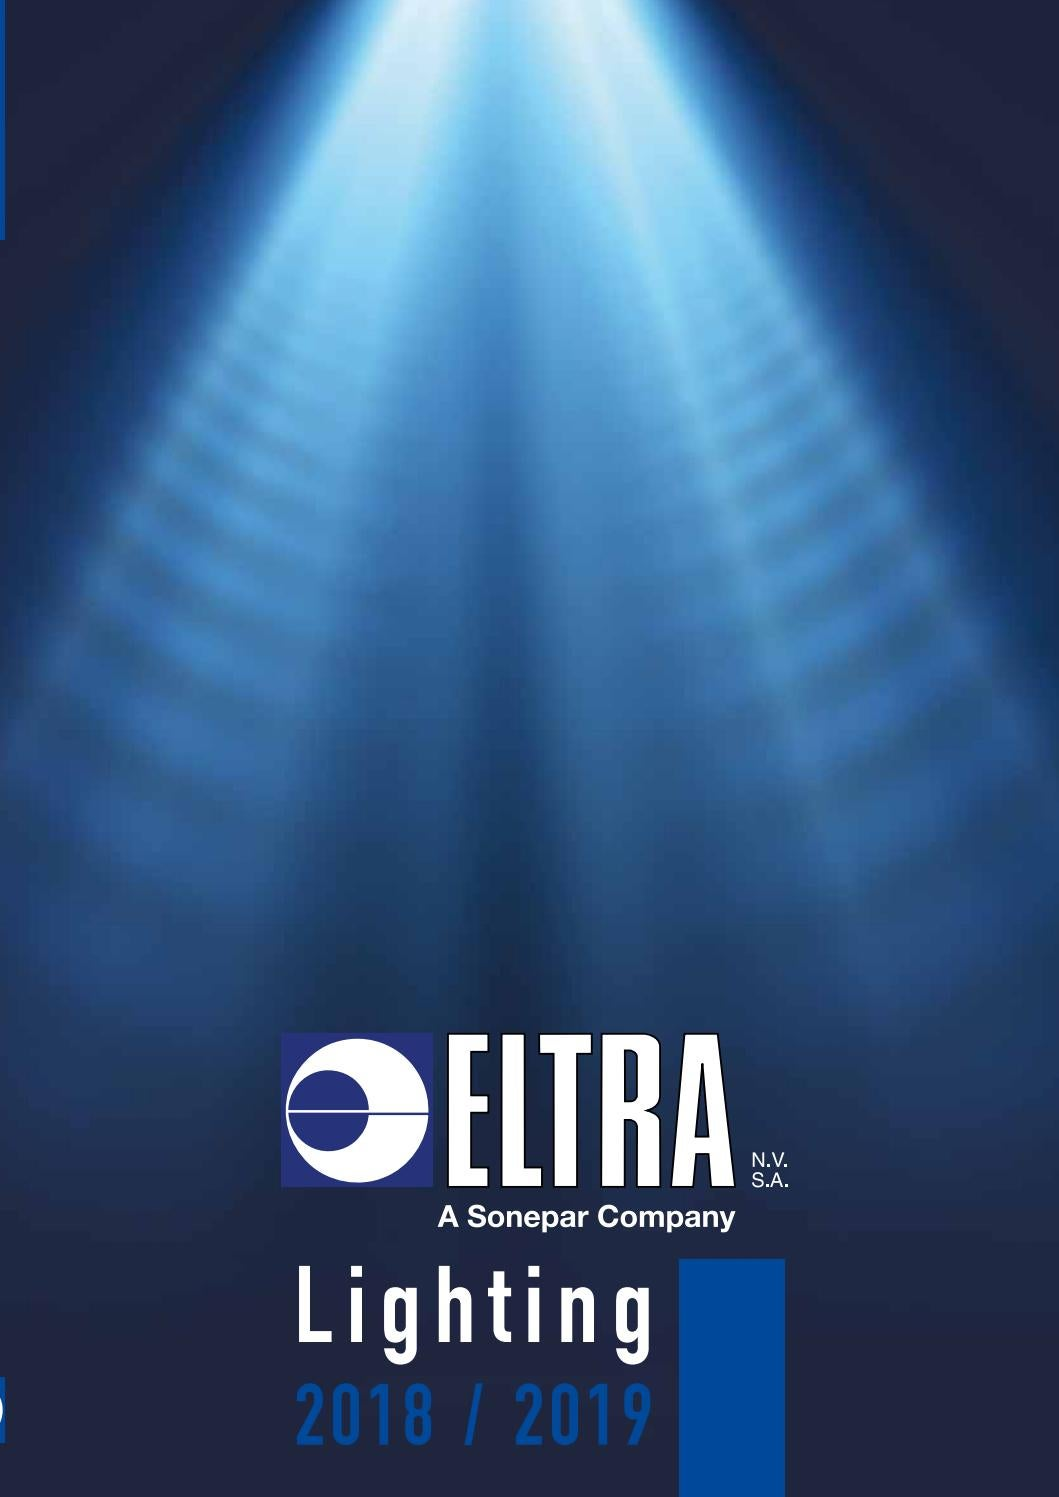 E27 Led Lamp Idual G100 Met Afstandsbediening 16w Eltra Catalogue Lighting By Eltra Nv Issuu